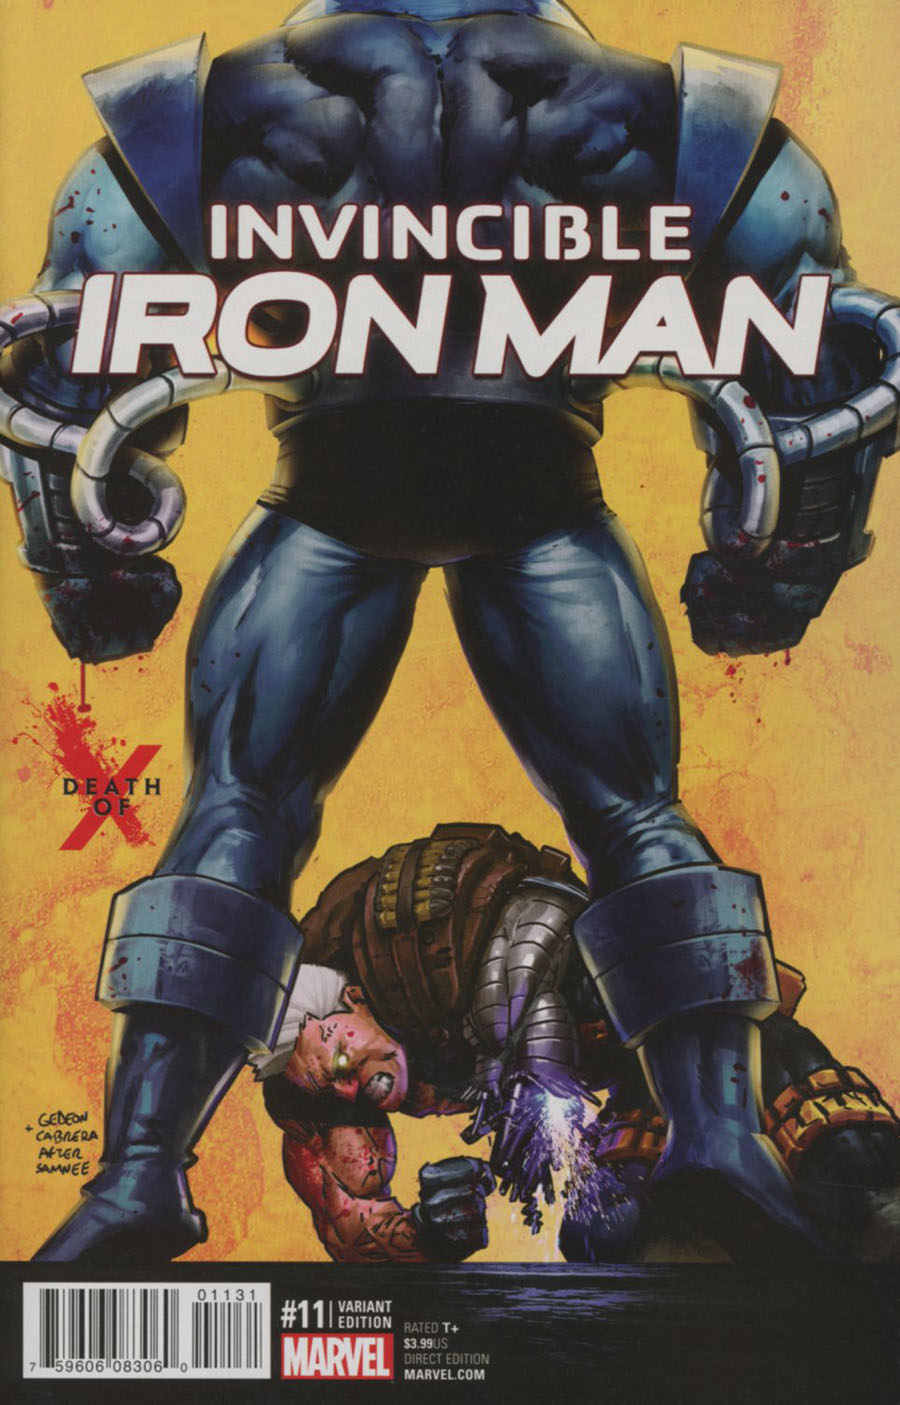 Invincible Iron Man Vol 2 #11 Cover B Variant Death Of X Cover (Road To Civil War II Tie-In)